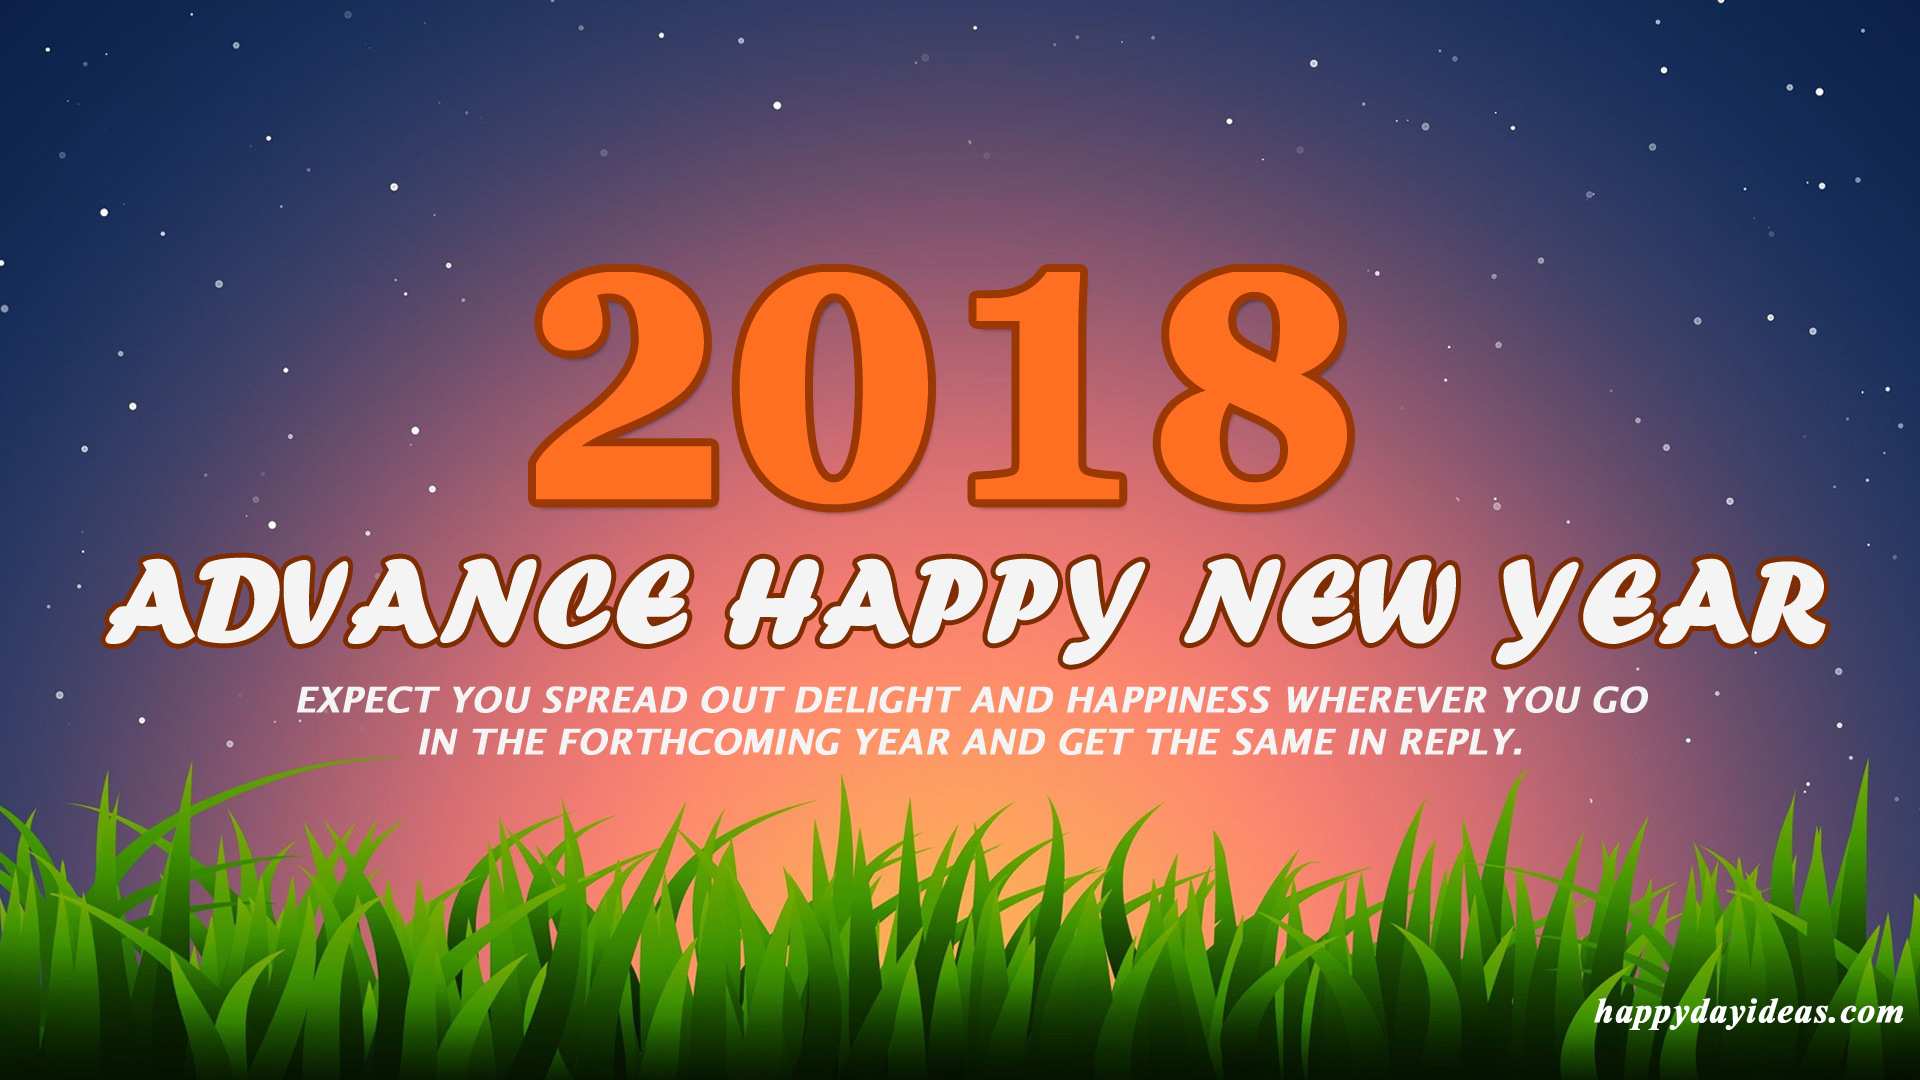 advance happy new year 2018 wallpaper image wishes quotes 1920x1080